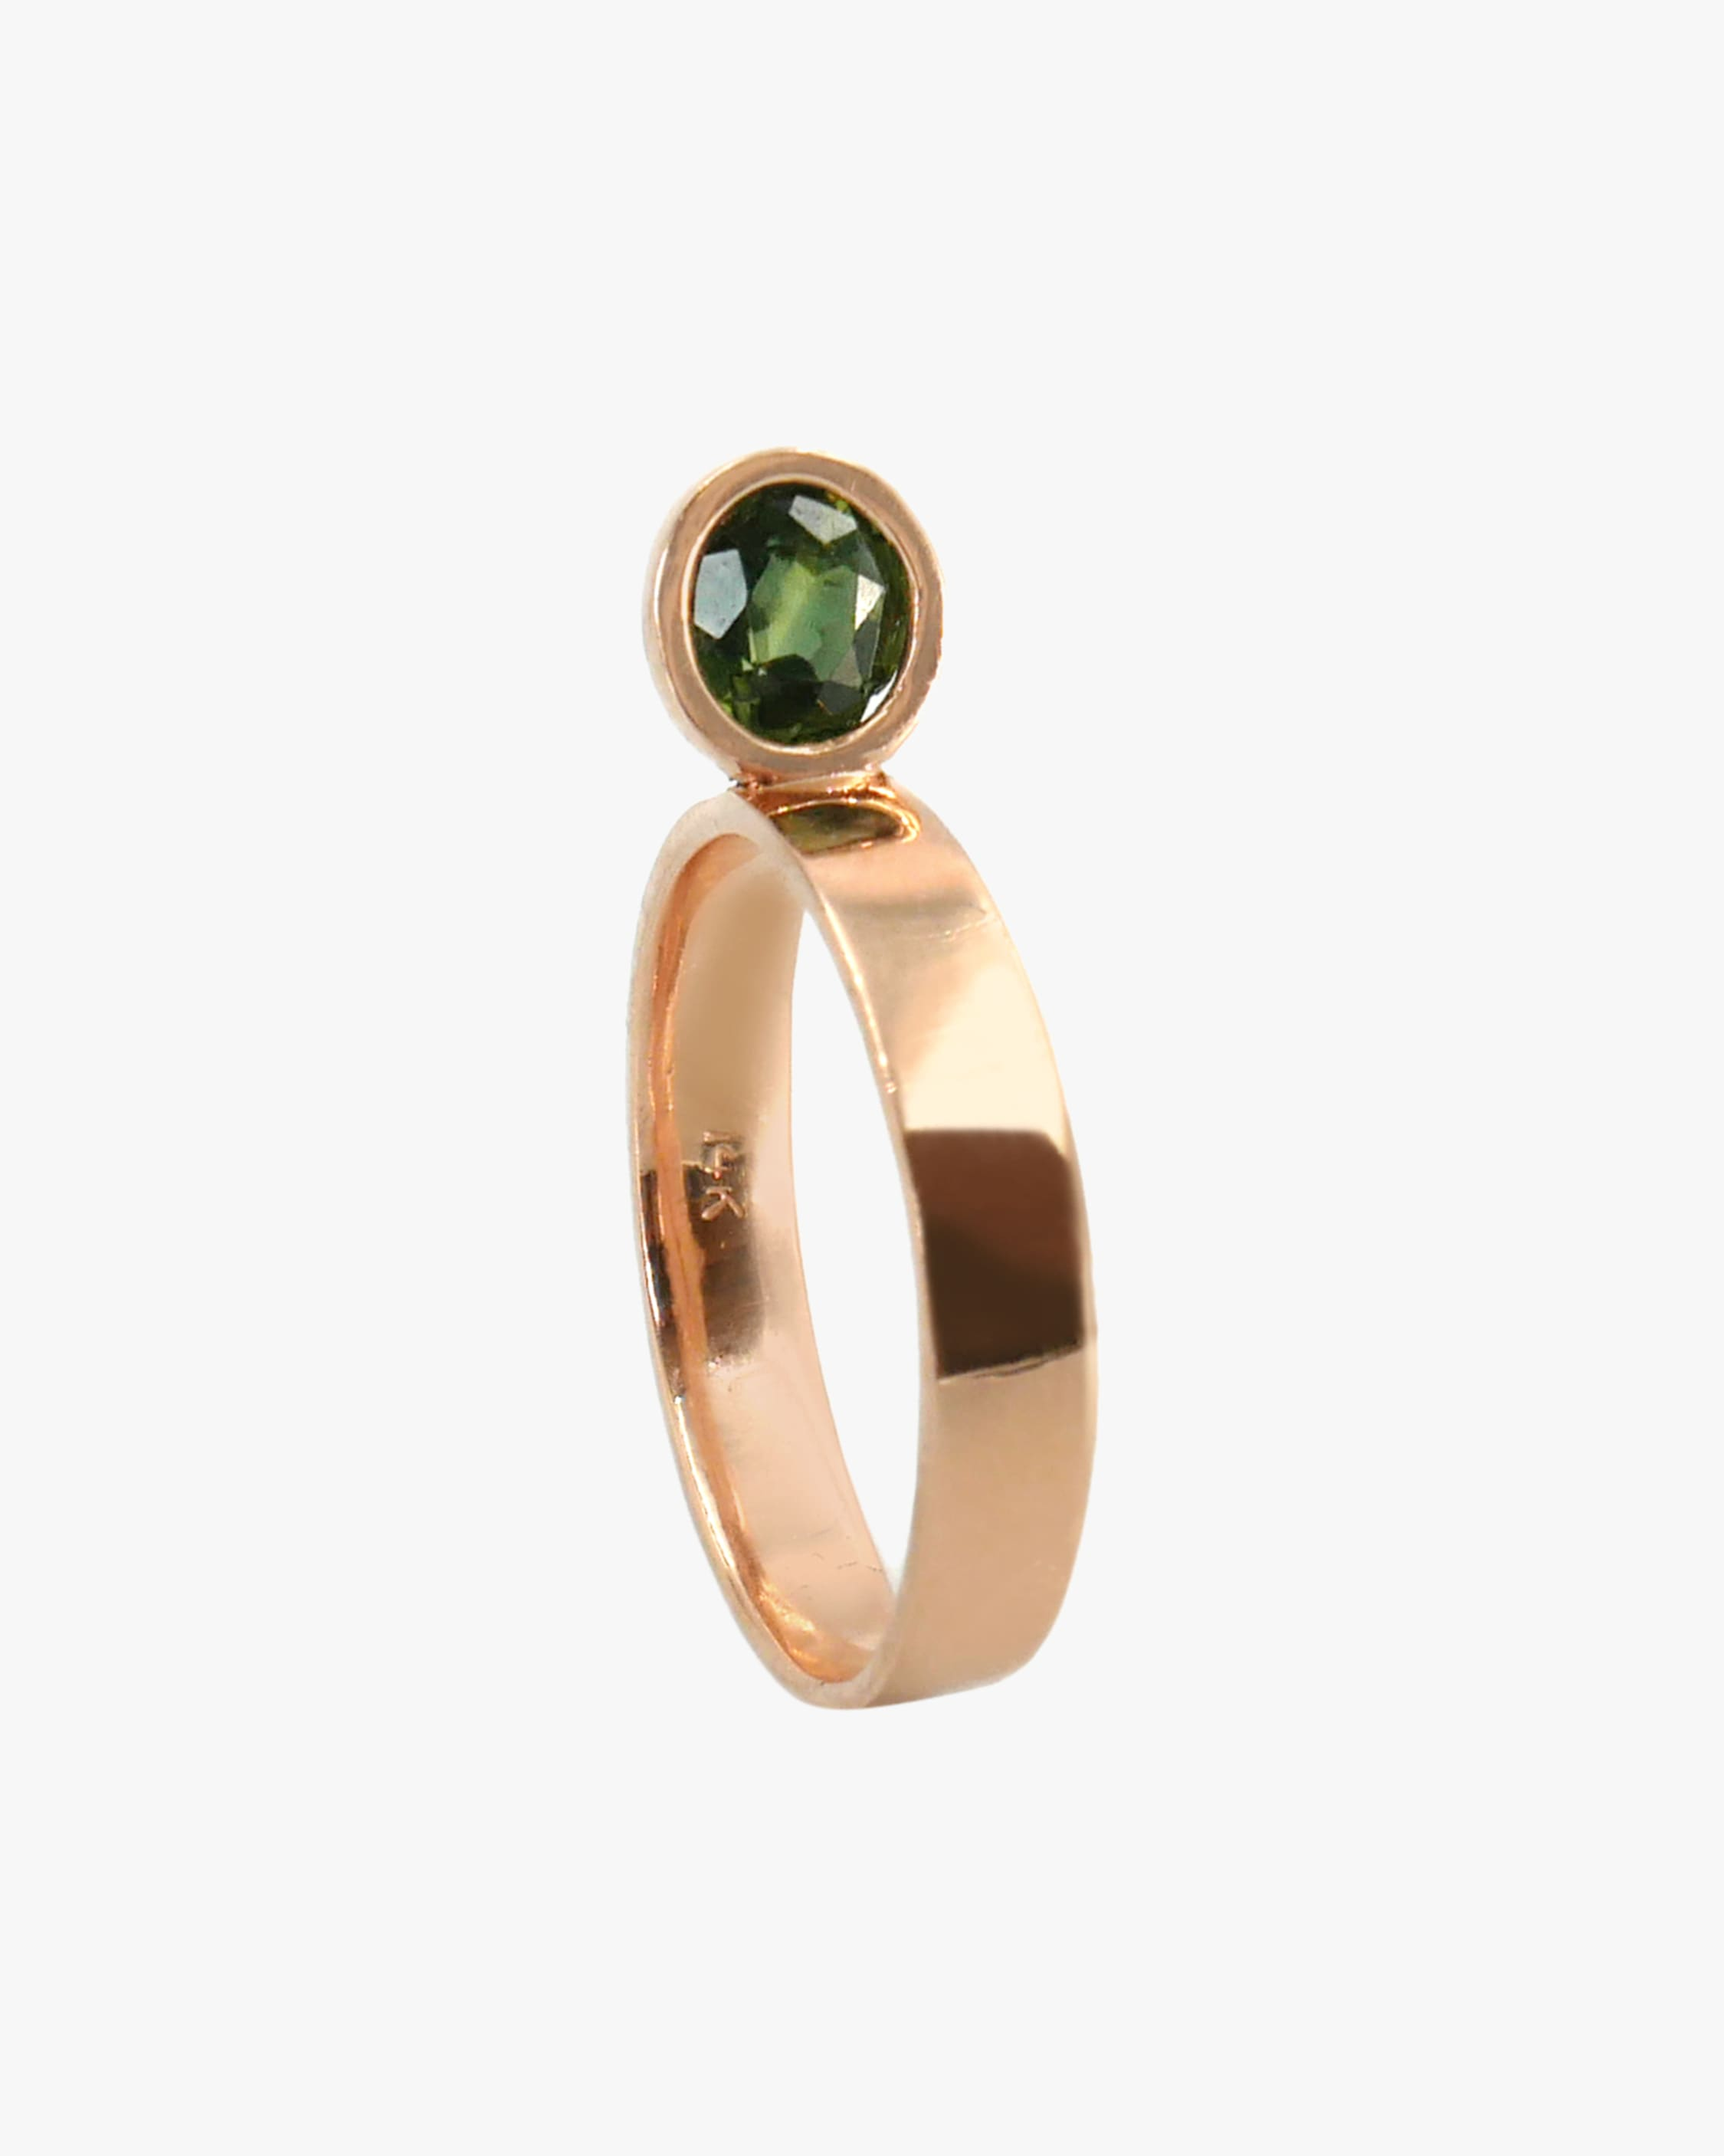 Leslie Paige Green Sapphire Perched Ring 1